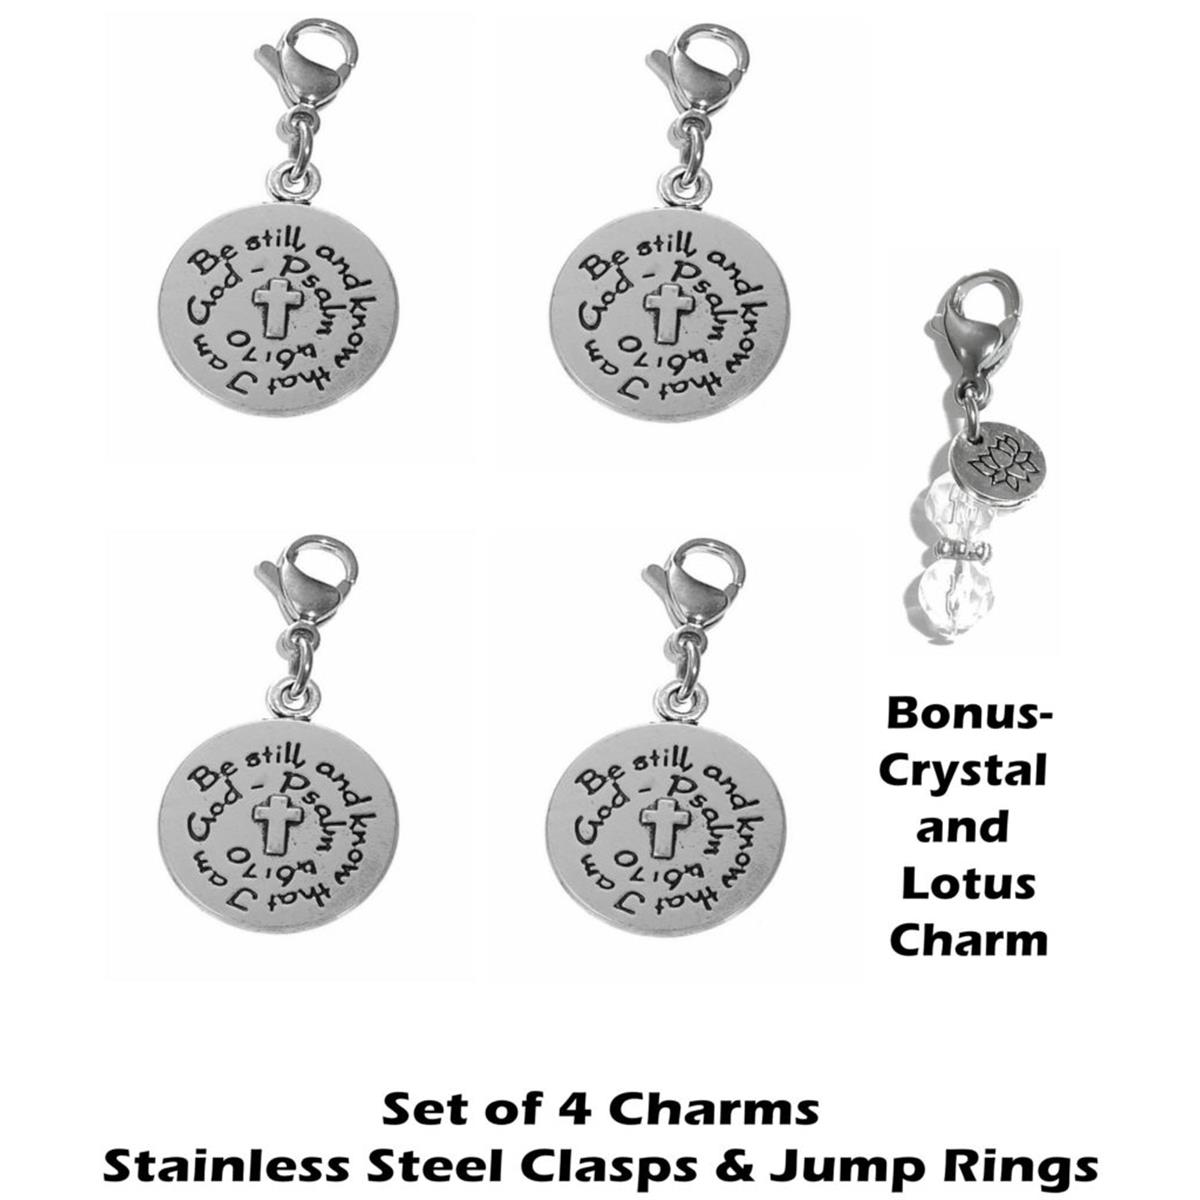 4 pack be still clip on charms - inspirational charms